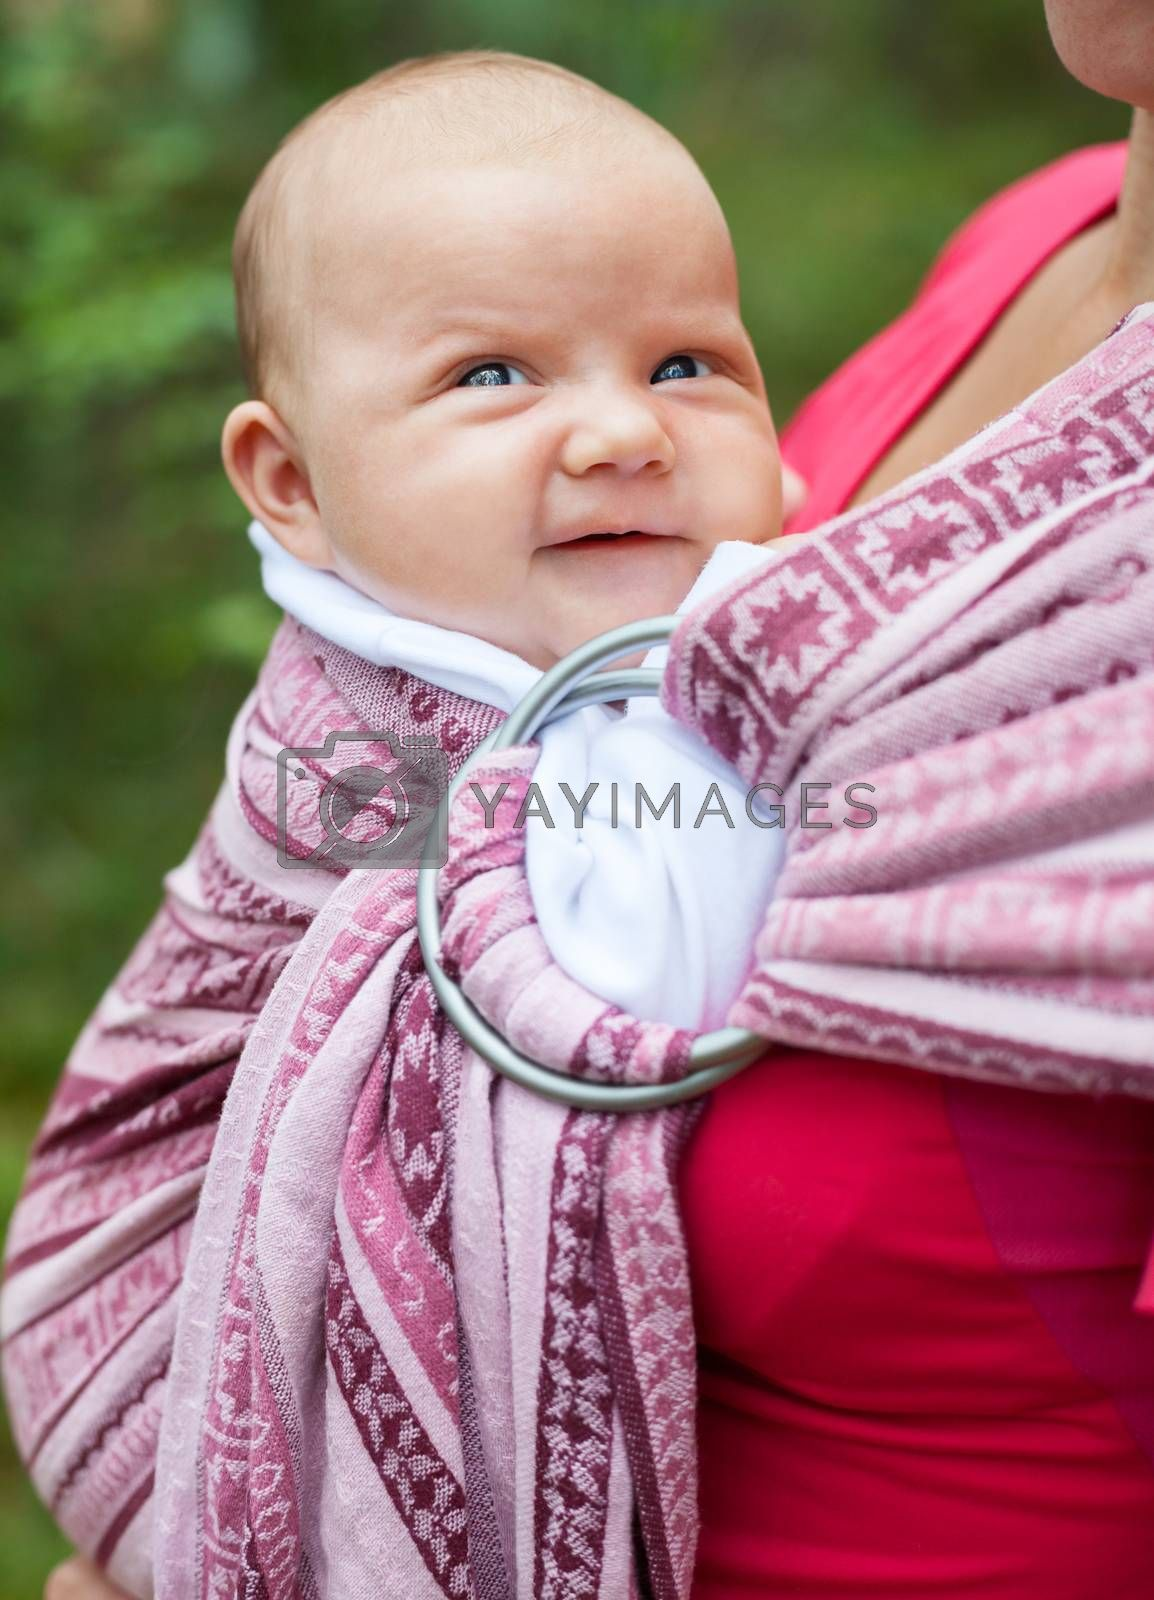 Mother carrying her child in a baby sling